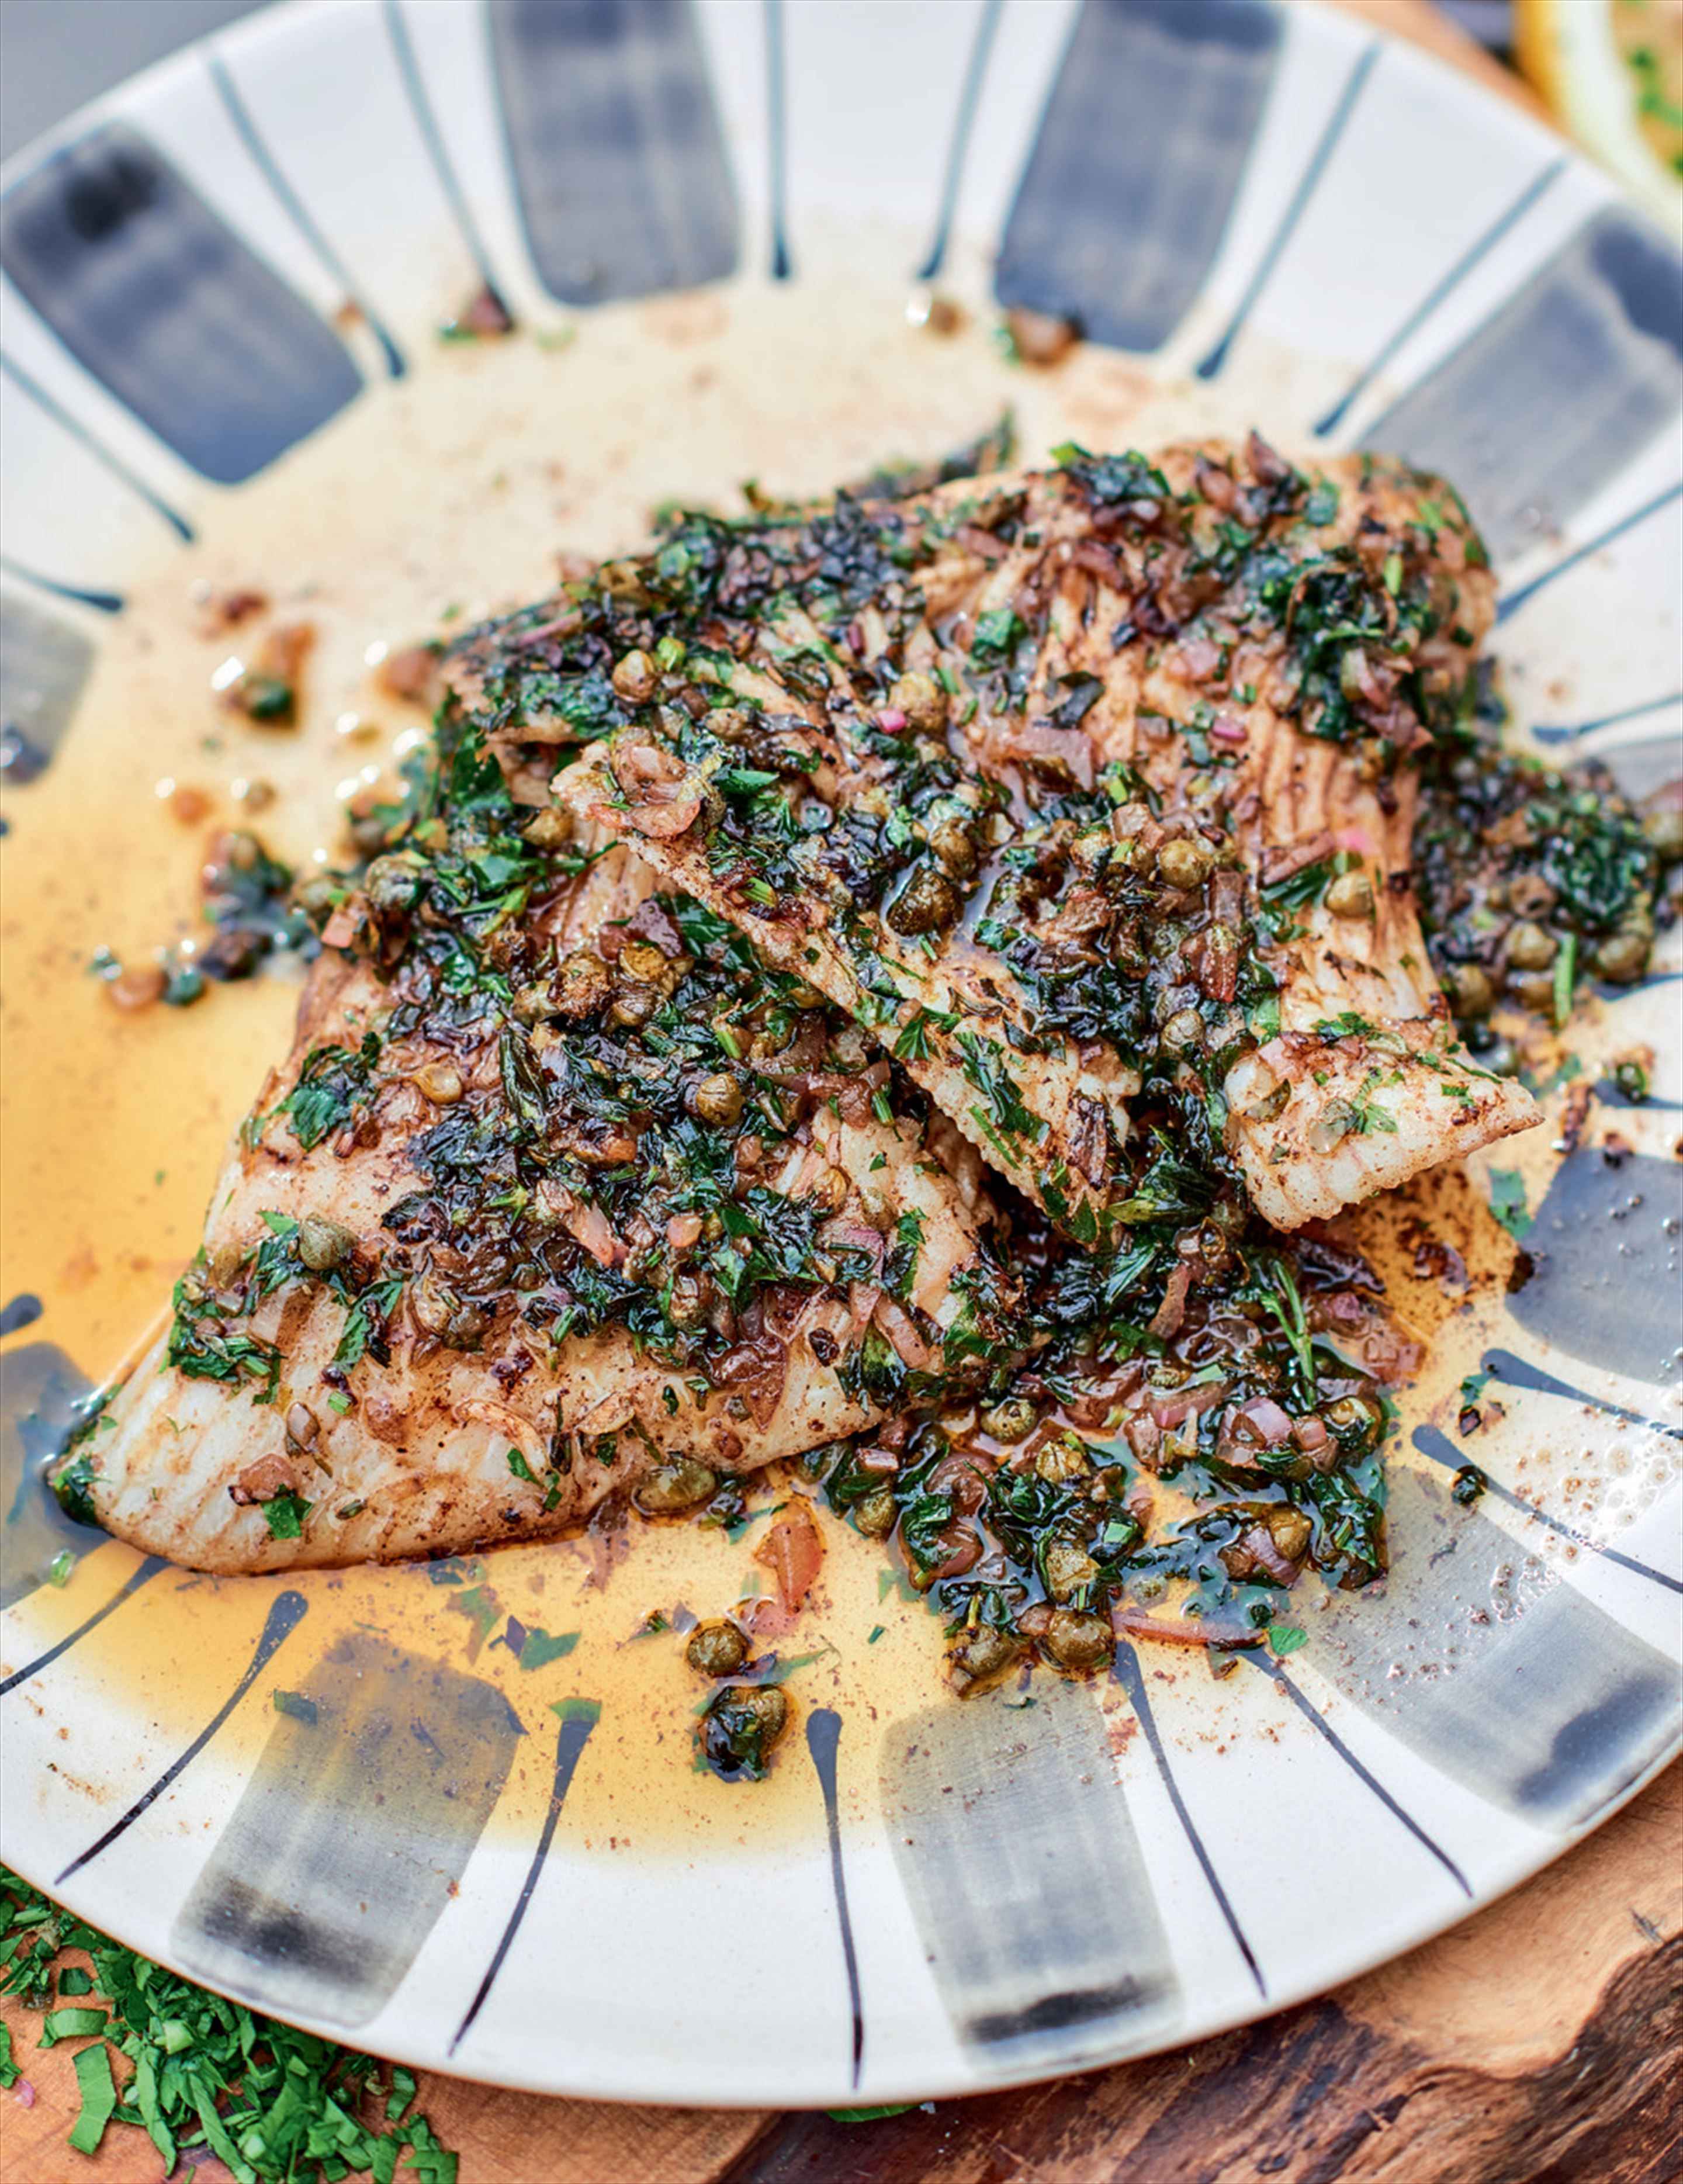 Pan-fried skate wing with nut-brown butter